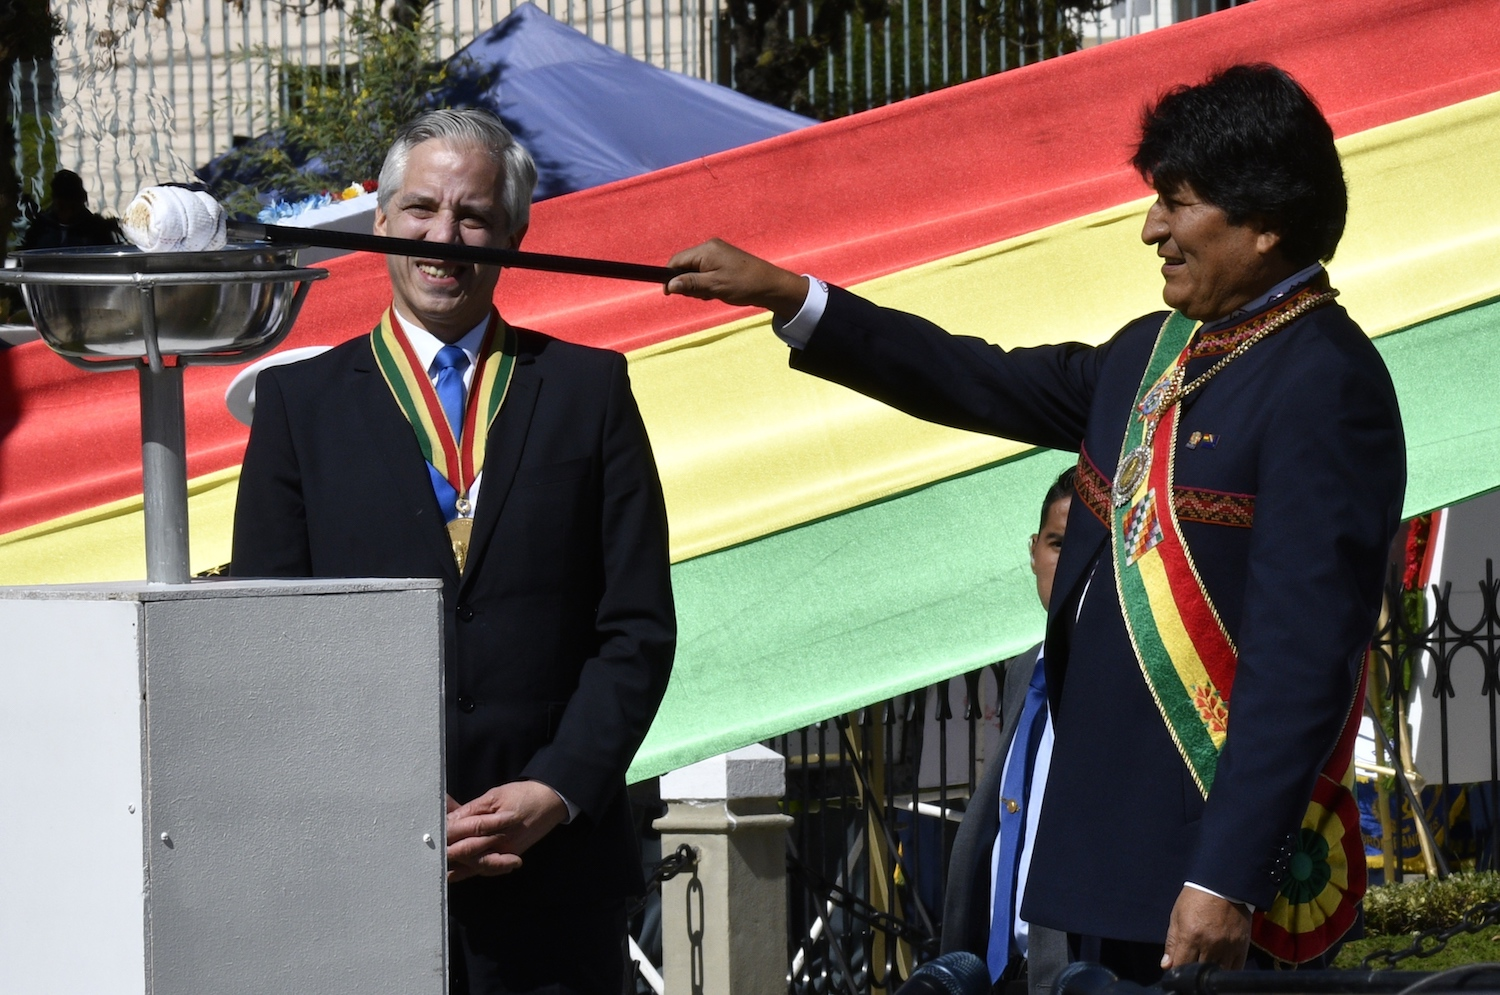 Bolivian President Evo Morales (R) lights a votive flame as Vice-President Alvaro Garcia Linera looks on at the Eduardo Avaroa Monument in La Paz on March 23, 2018 during the commemoration of the 139th anniversary of the Battle of Calama, during a four-year war with Chile, in which Bolivia lost its access to the sea to Chile. Hearings at the UN's top court have taken place between March 19 and 23, while three more days of talks are planned next week. Following some 130 years of fruitless negotiations with Santiago, landlocked Bolivia lodged a complaint with the International Court of Justice (ICJ) based in The Hague in April 2013 urging UN judges to rule that Chile has a legal obligation to enter into negotiations to end the row. / AFP PHOTO / Aizar RALDES        (Photo credit should read AIZAR RALDES/AFP/Getty Images)